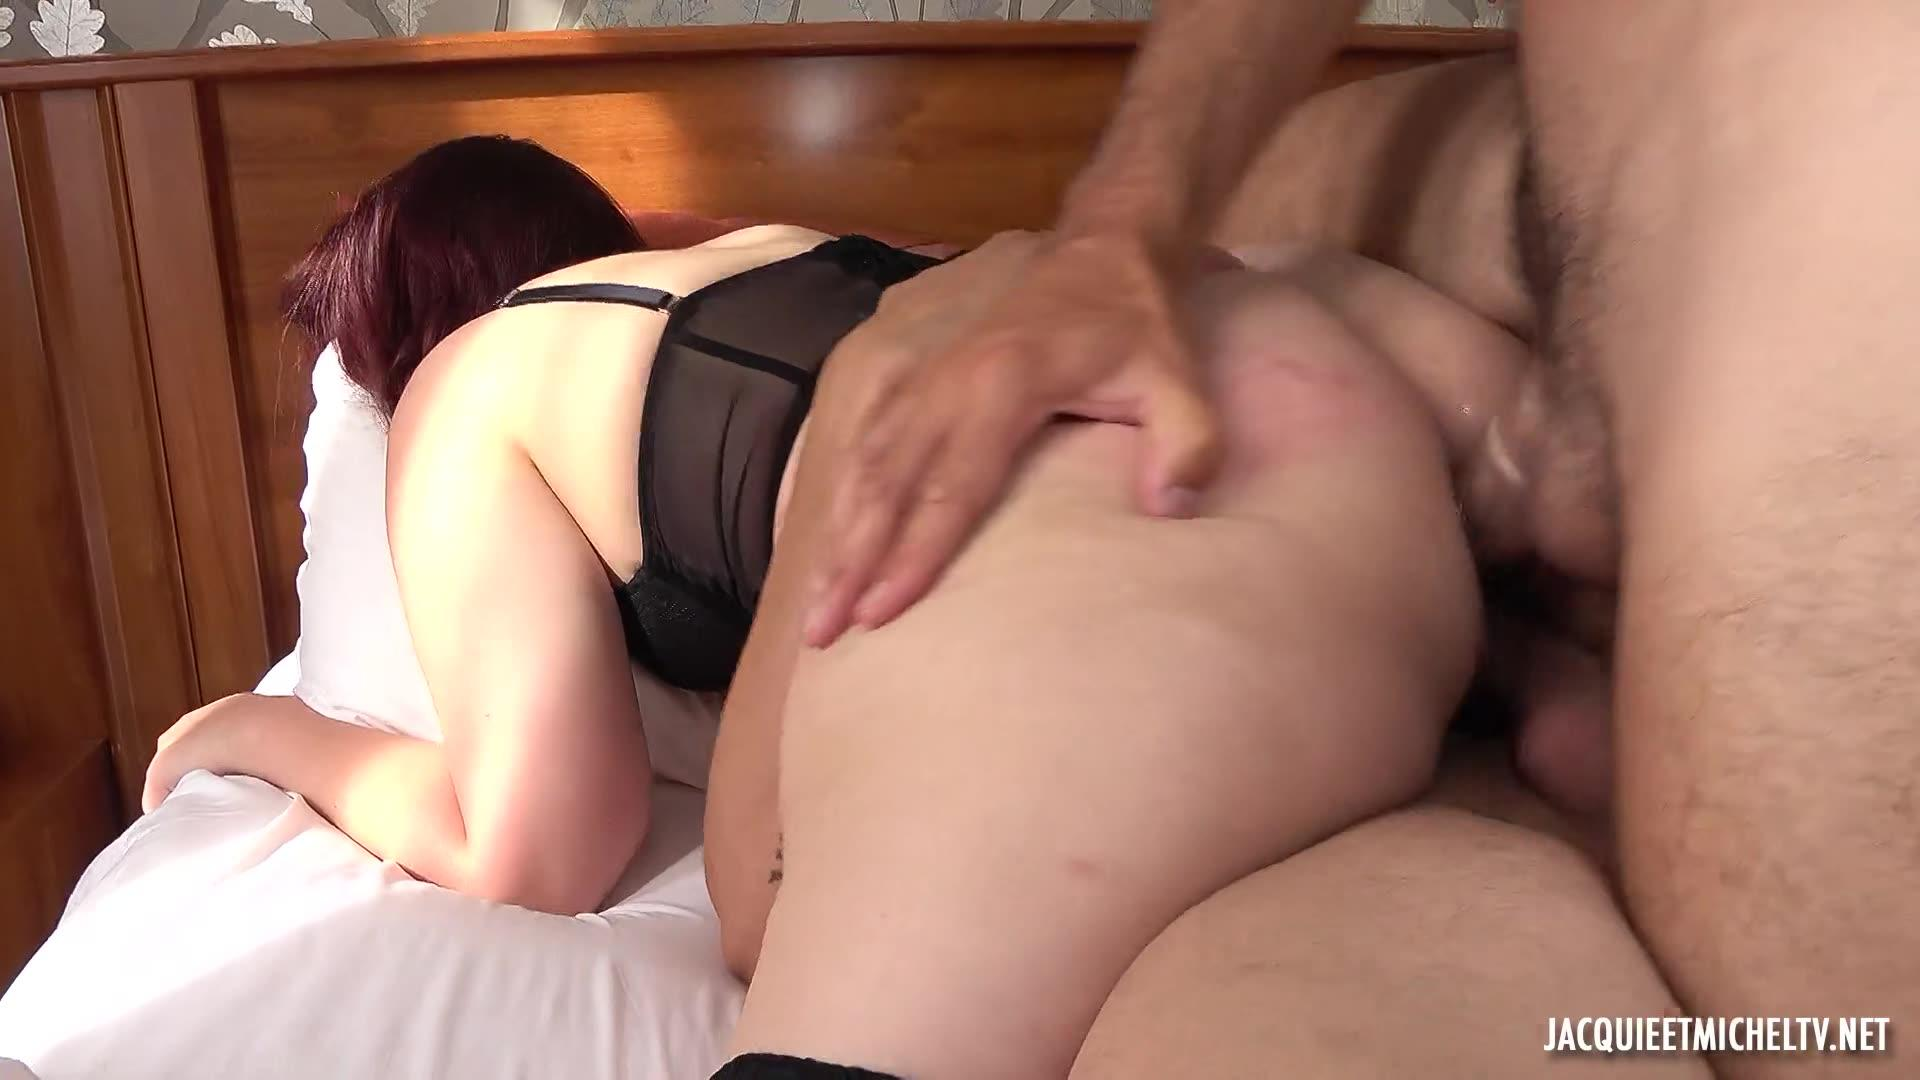 My Dirty Hobby French Anal